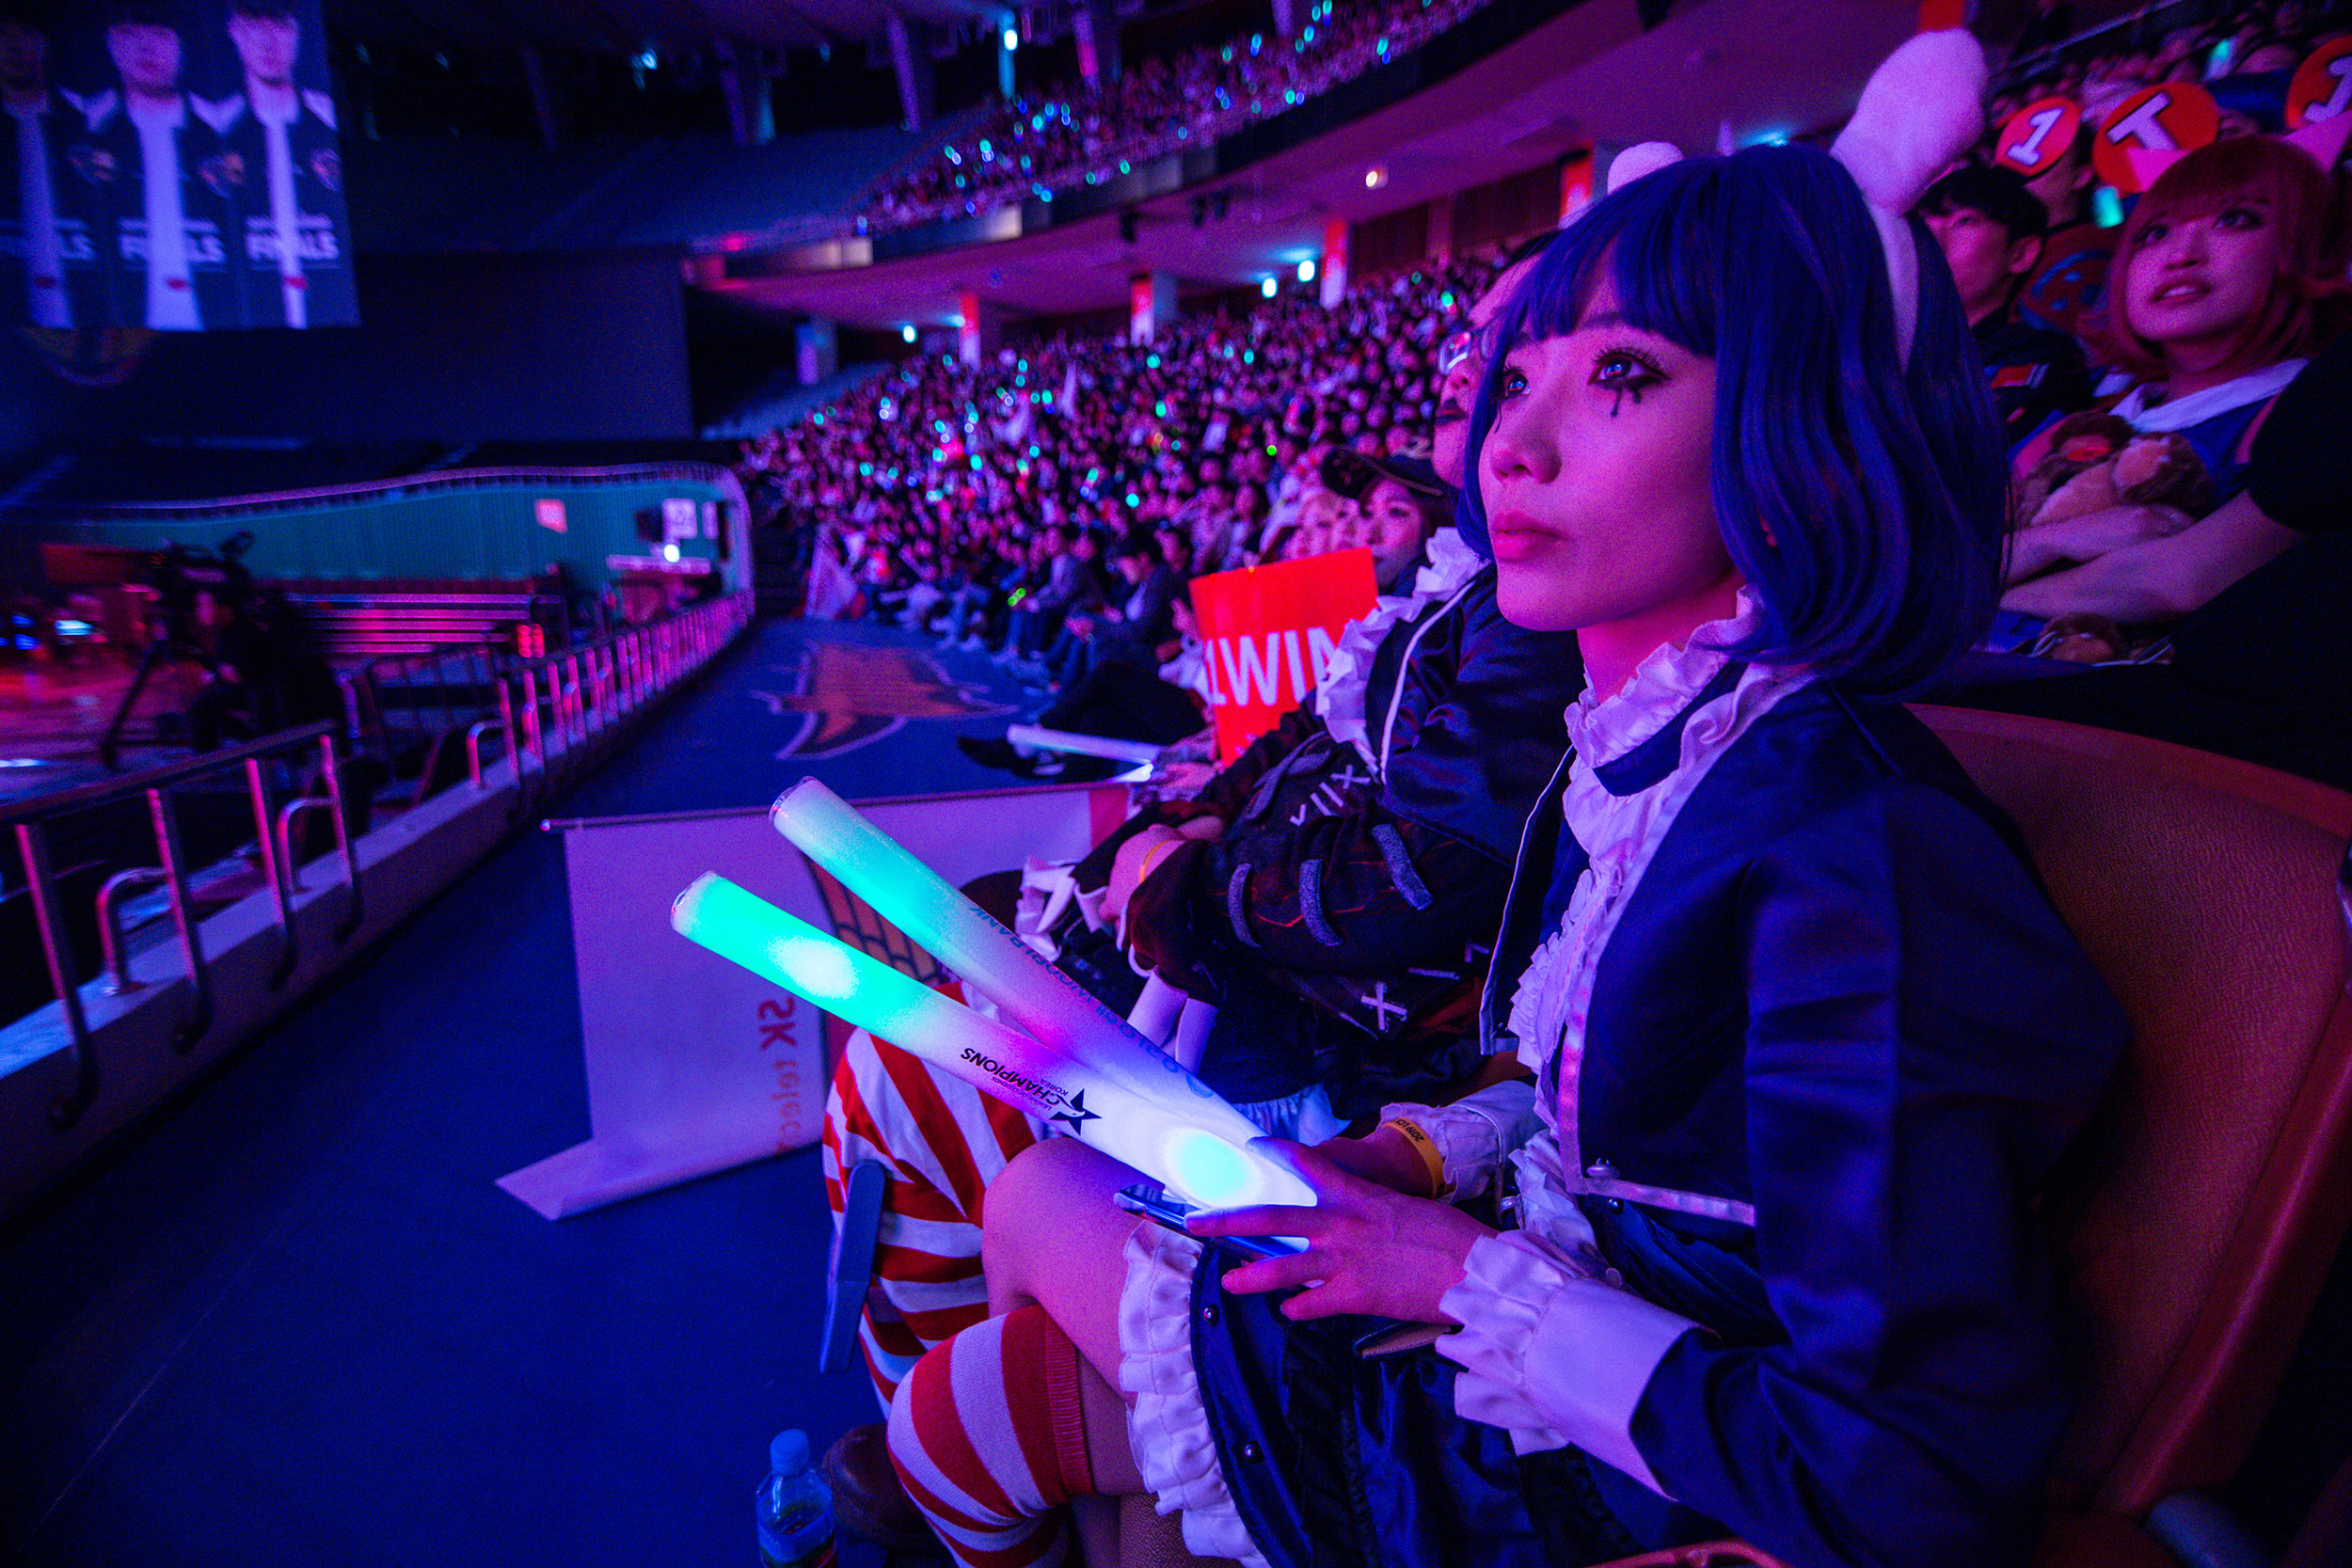 SEOUL, SOUTH KOREA - APRIL 13: Fan dressed in character watching SK Telecom T1 win 3-0 over Griffin at LCK Spring Finals at Jamsil Sports Center on April 13, 2019 in Seoul, Korea. Photo by Timo Verdeil/ESPAT Media